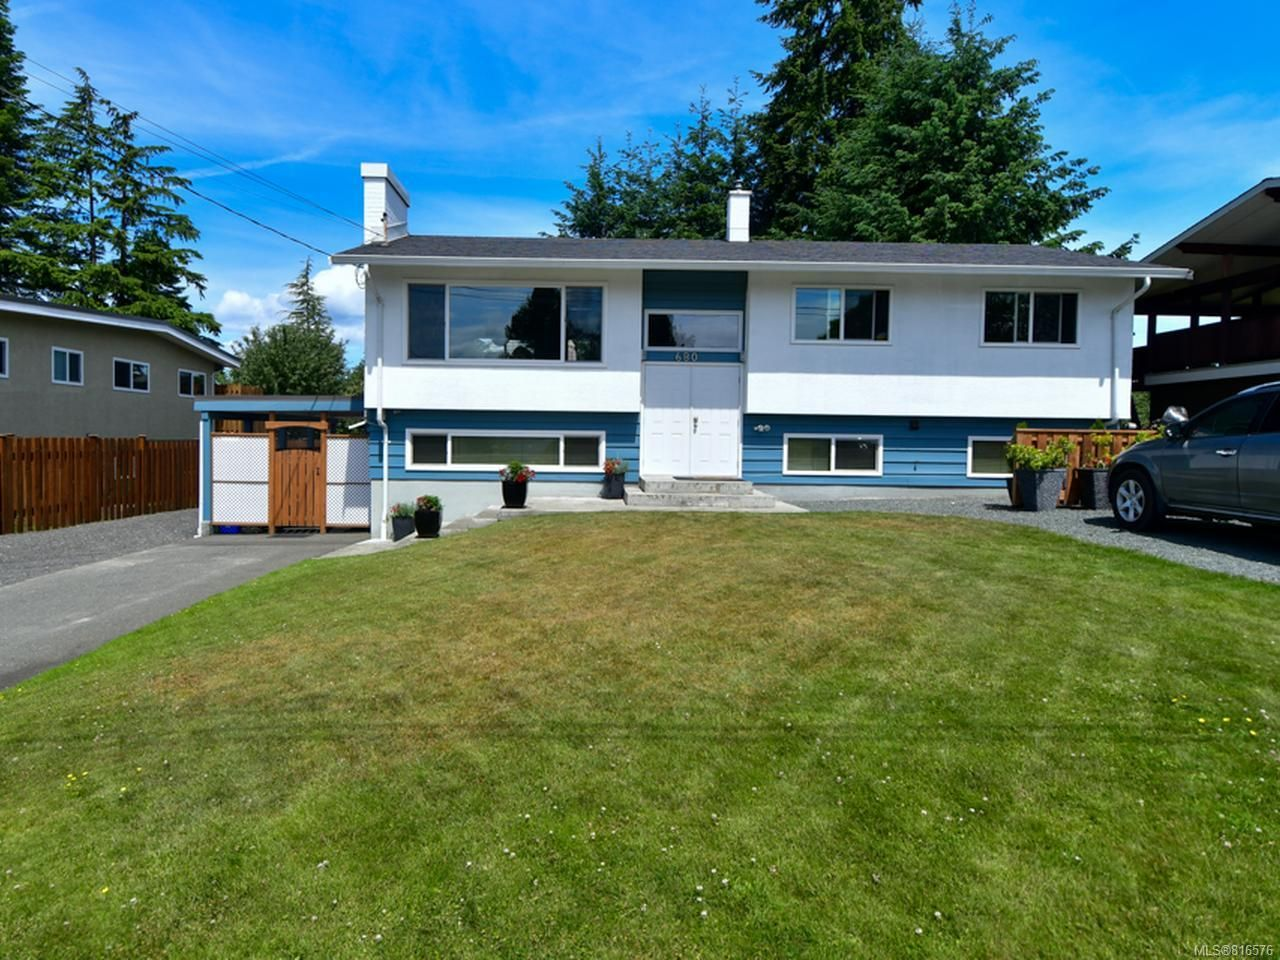 Main Photo: 680 ALPINE ROAD in CAMPBELL RIVER: CR Campbell River Central House for sale (Campbell River)  : MLS®# 816576